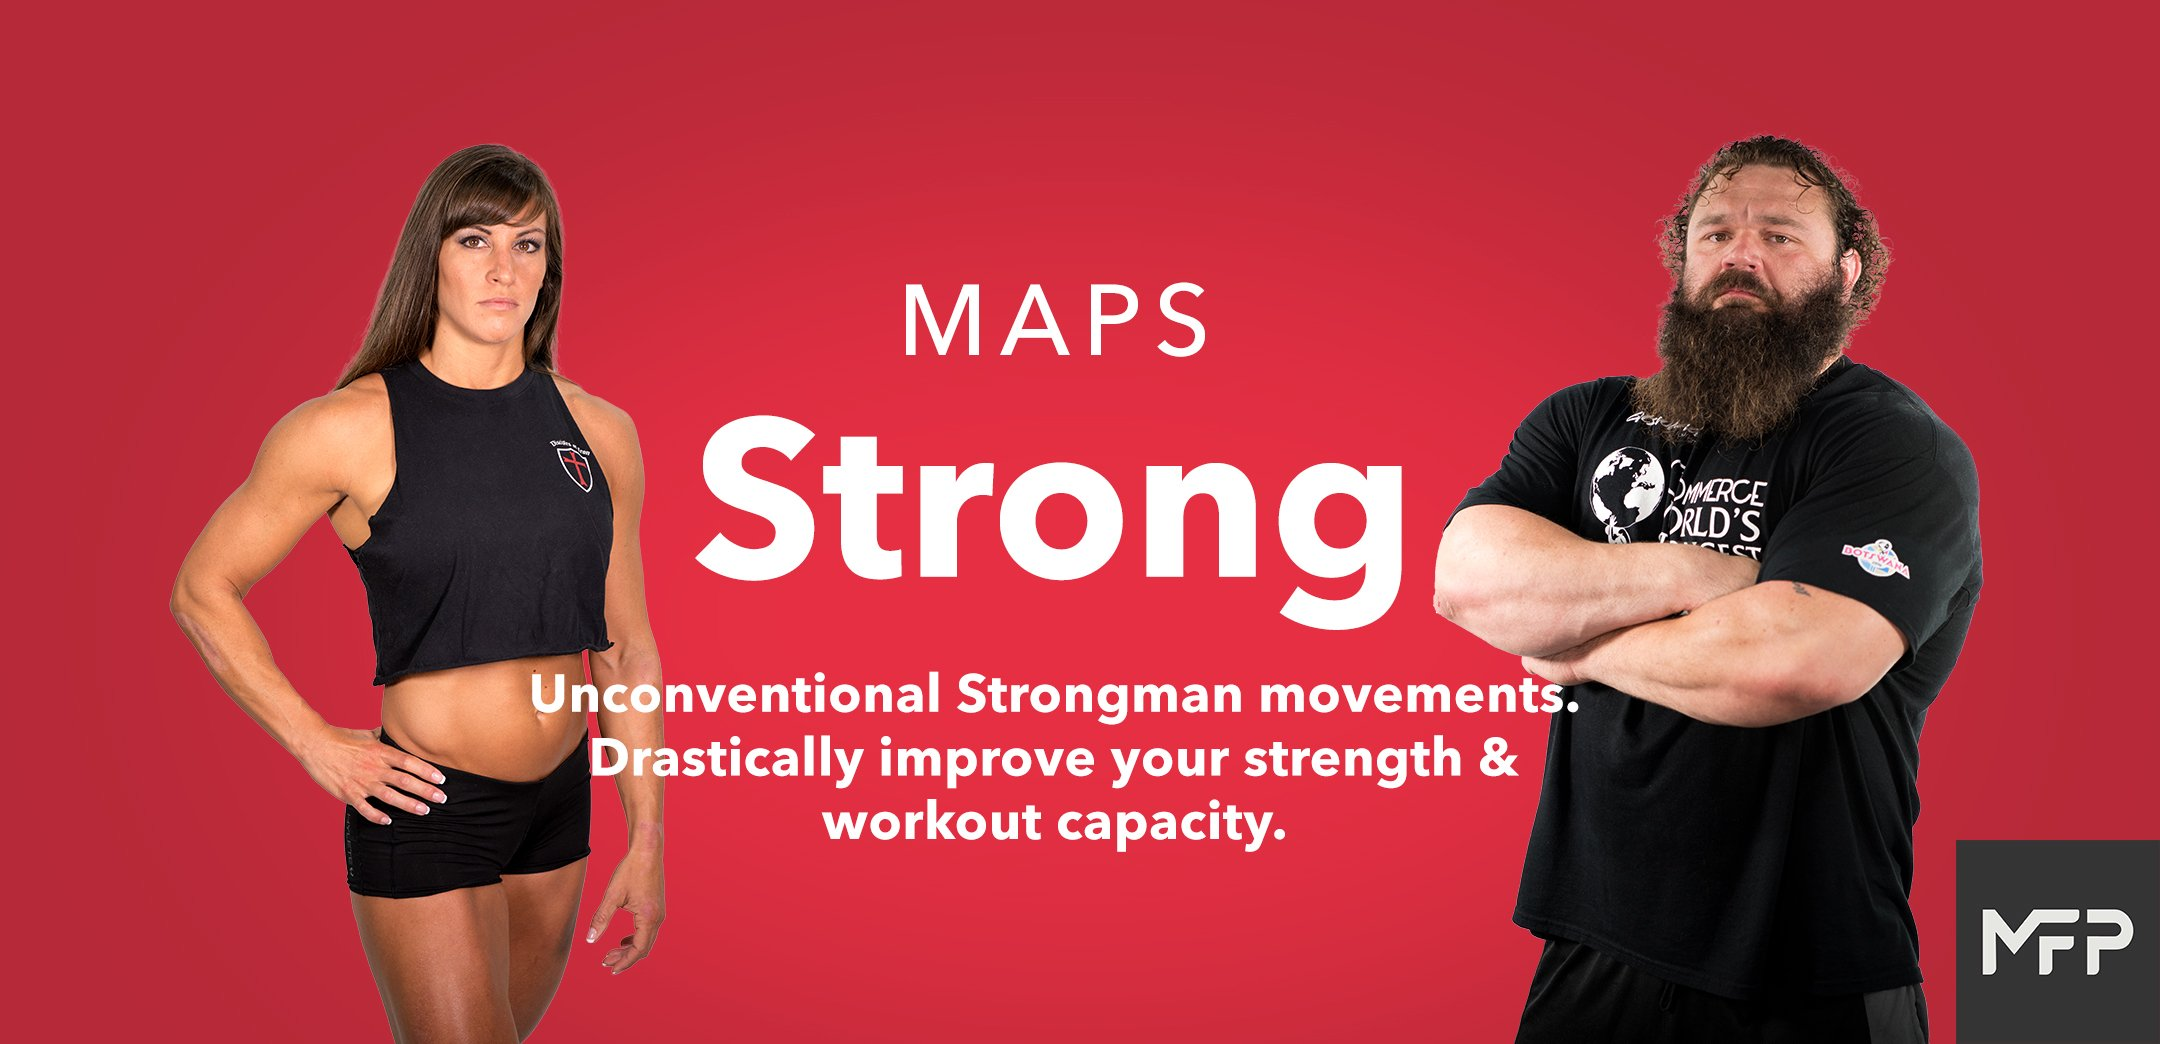 MAPS Stronger Banner